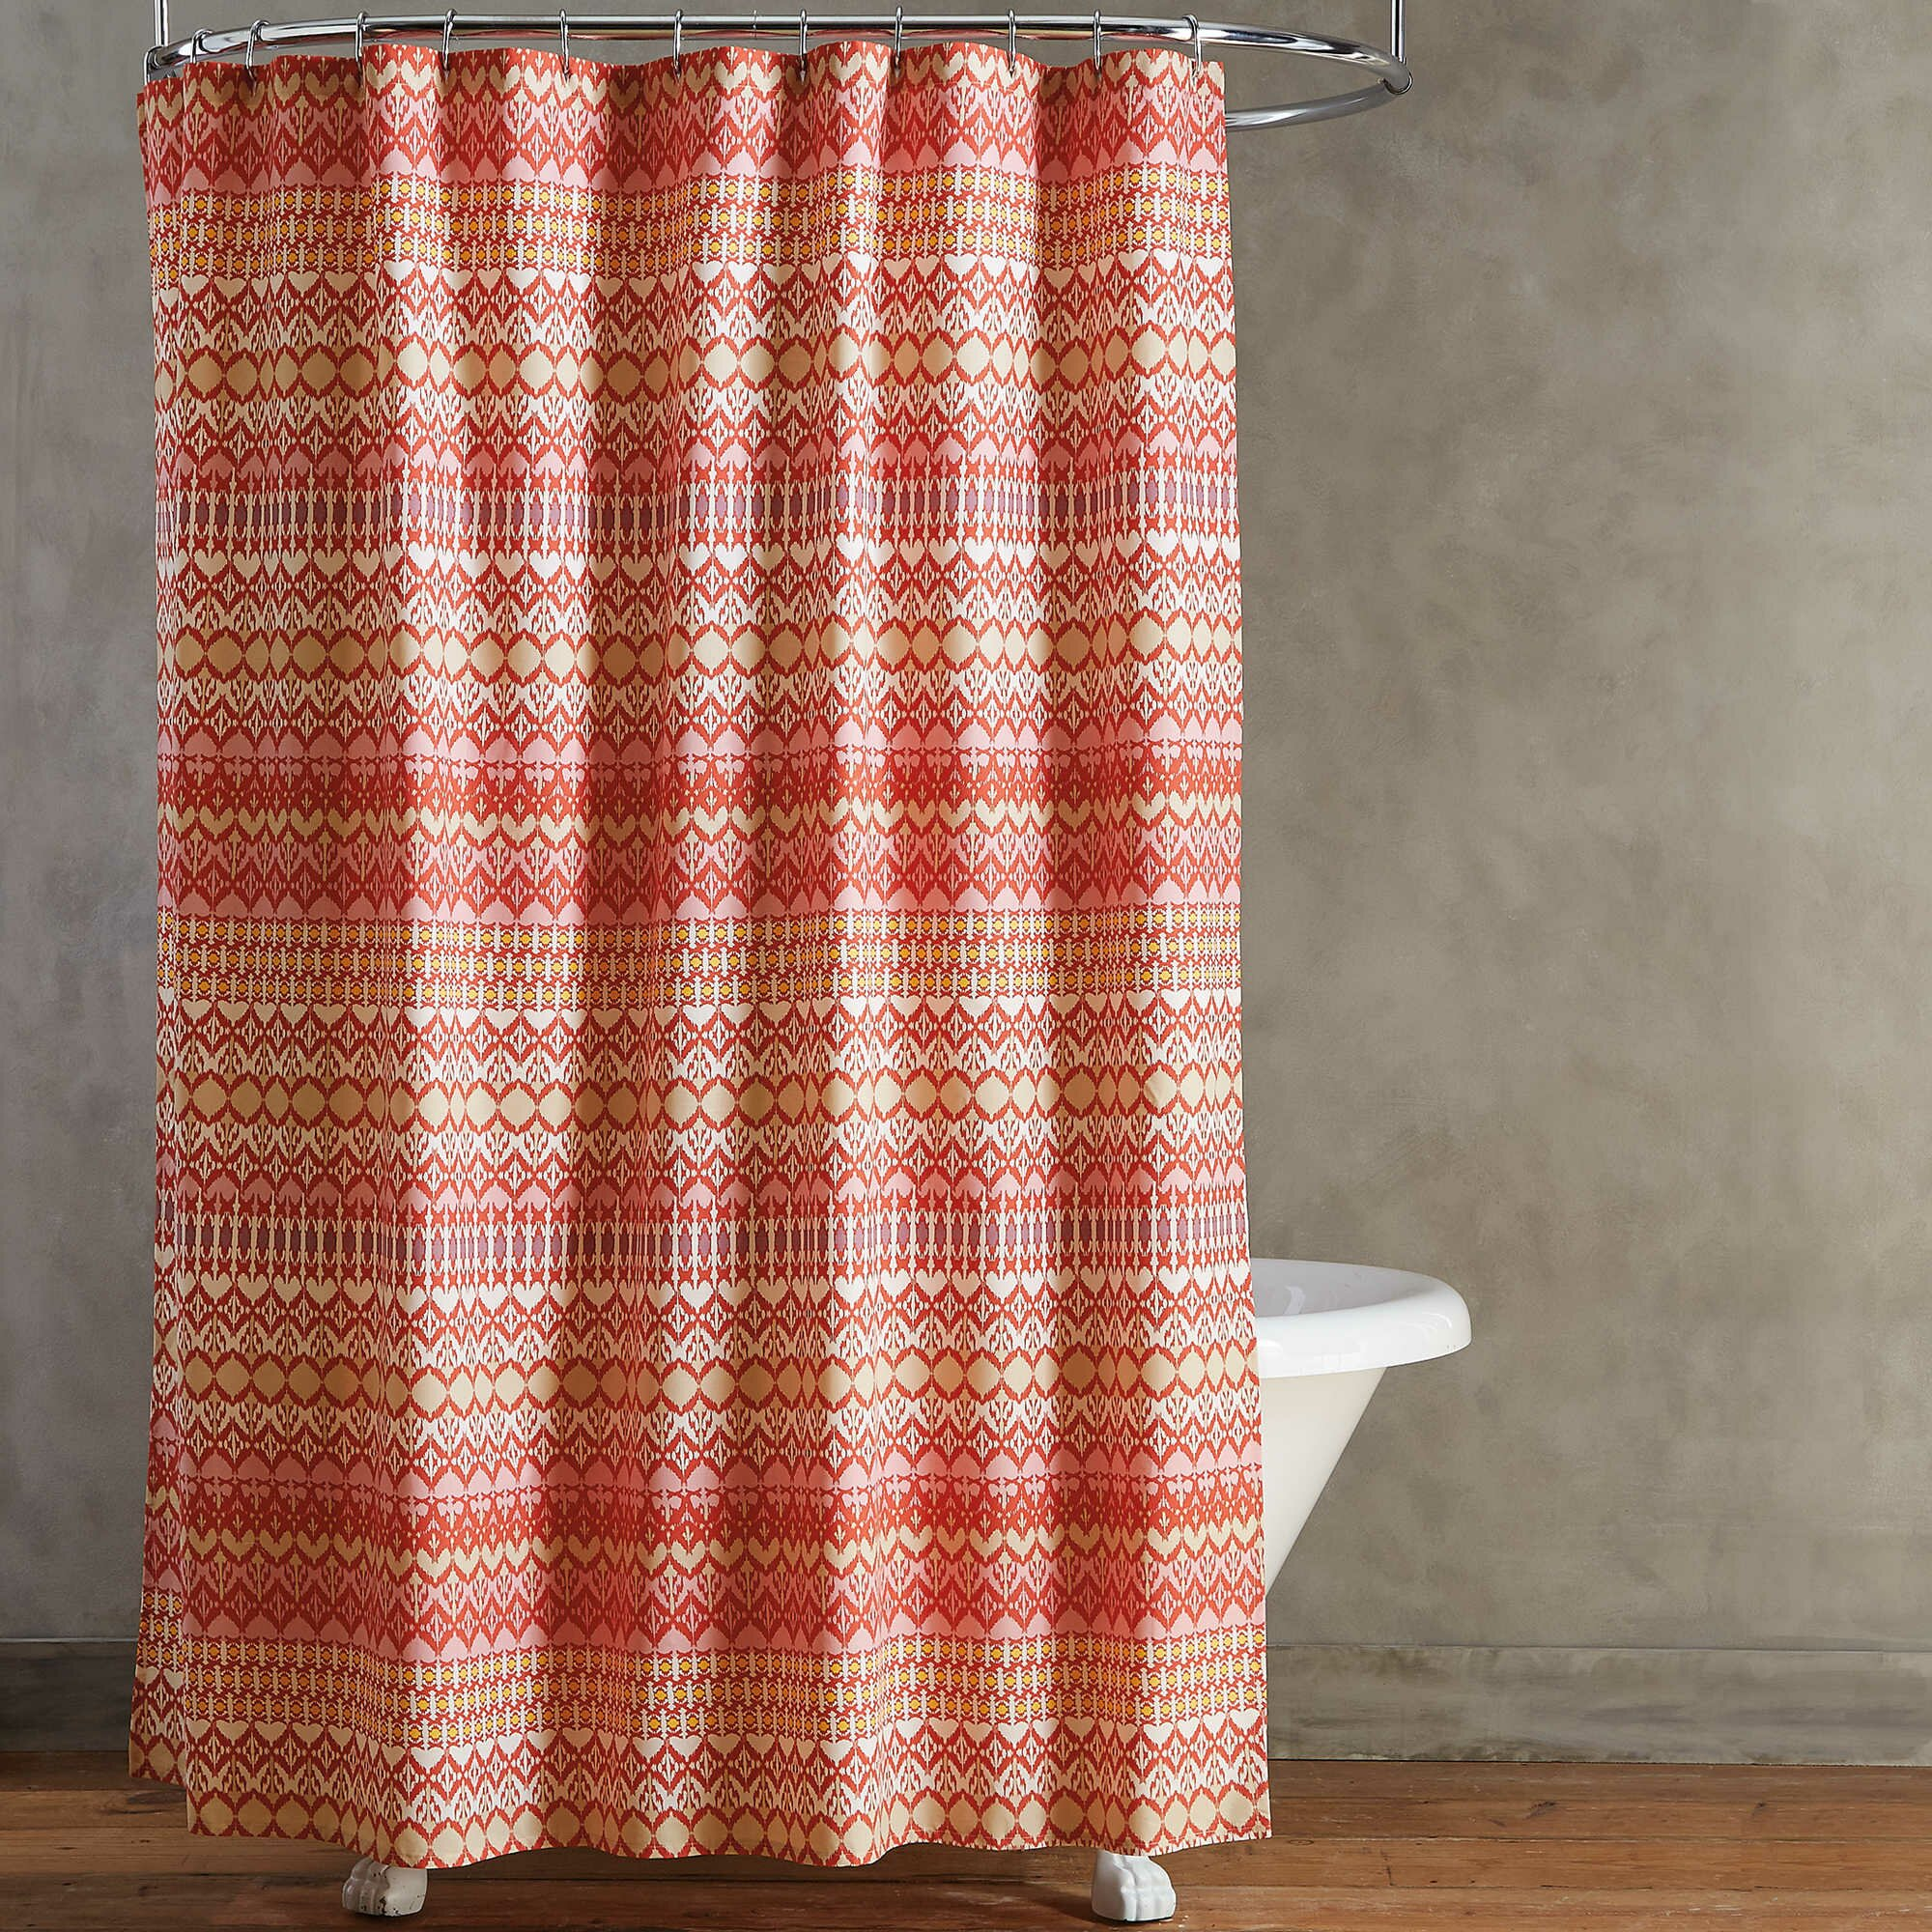 how to clean cloth shower curtain